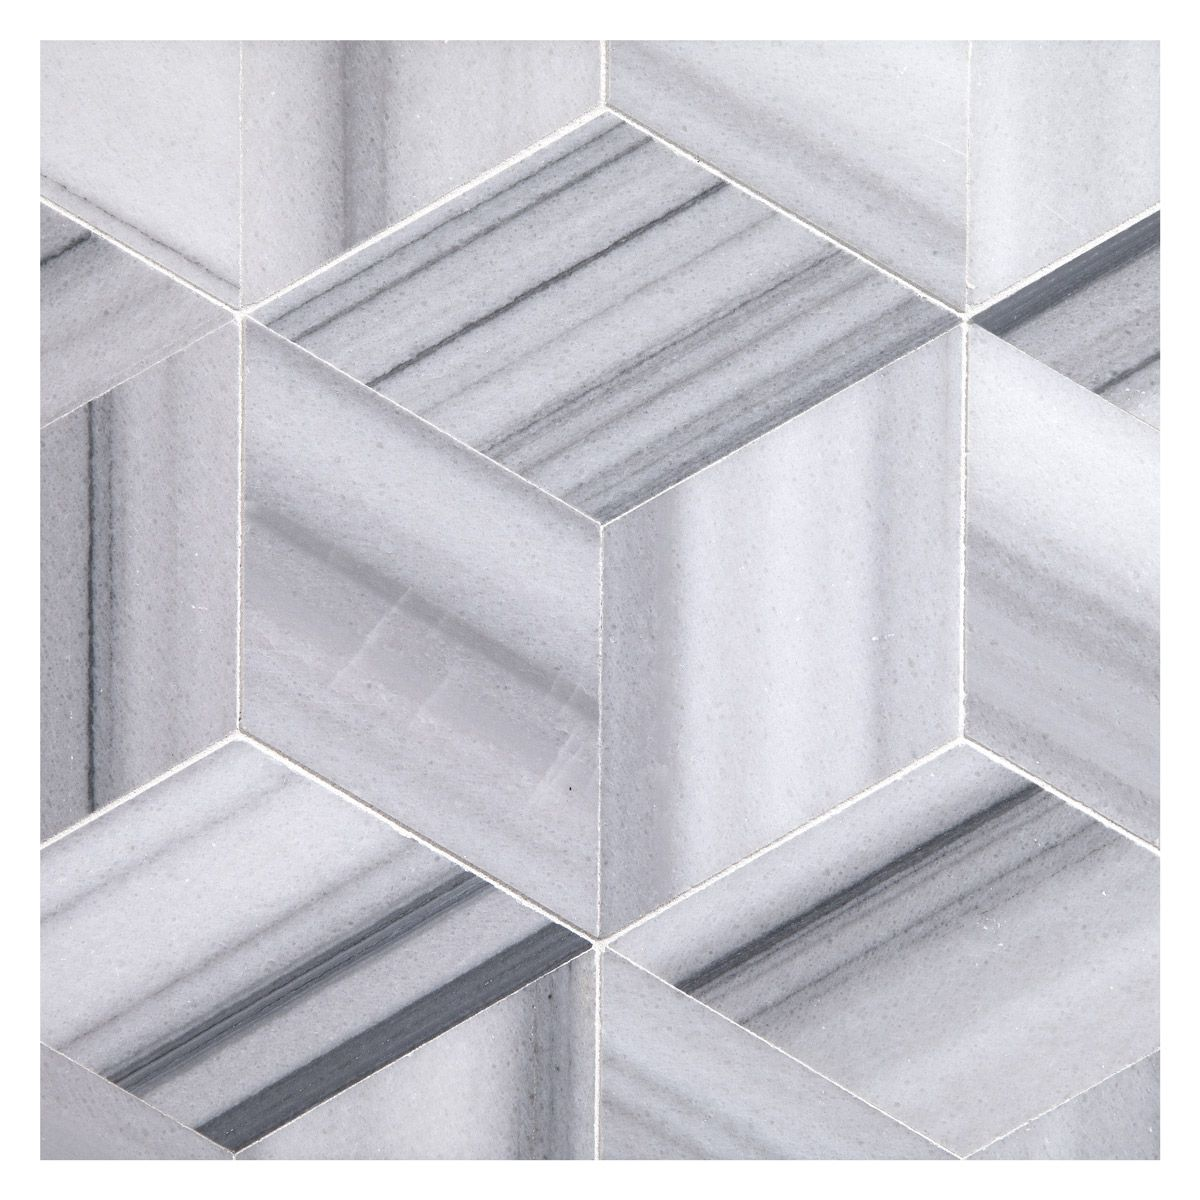 Complete Tile Collection Unique Mosaic Tile Patterns Gami Buku Tile Mi 039 S2 402 163 Color Grey Striato 12 Mosaic Flooring Mosaic Glass Mosaic Tiles